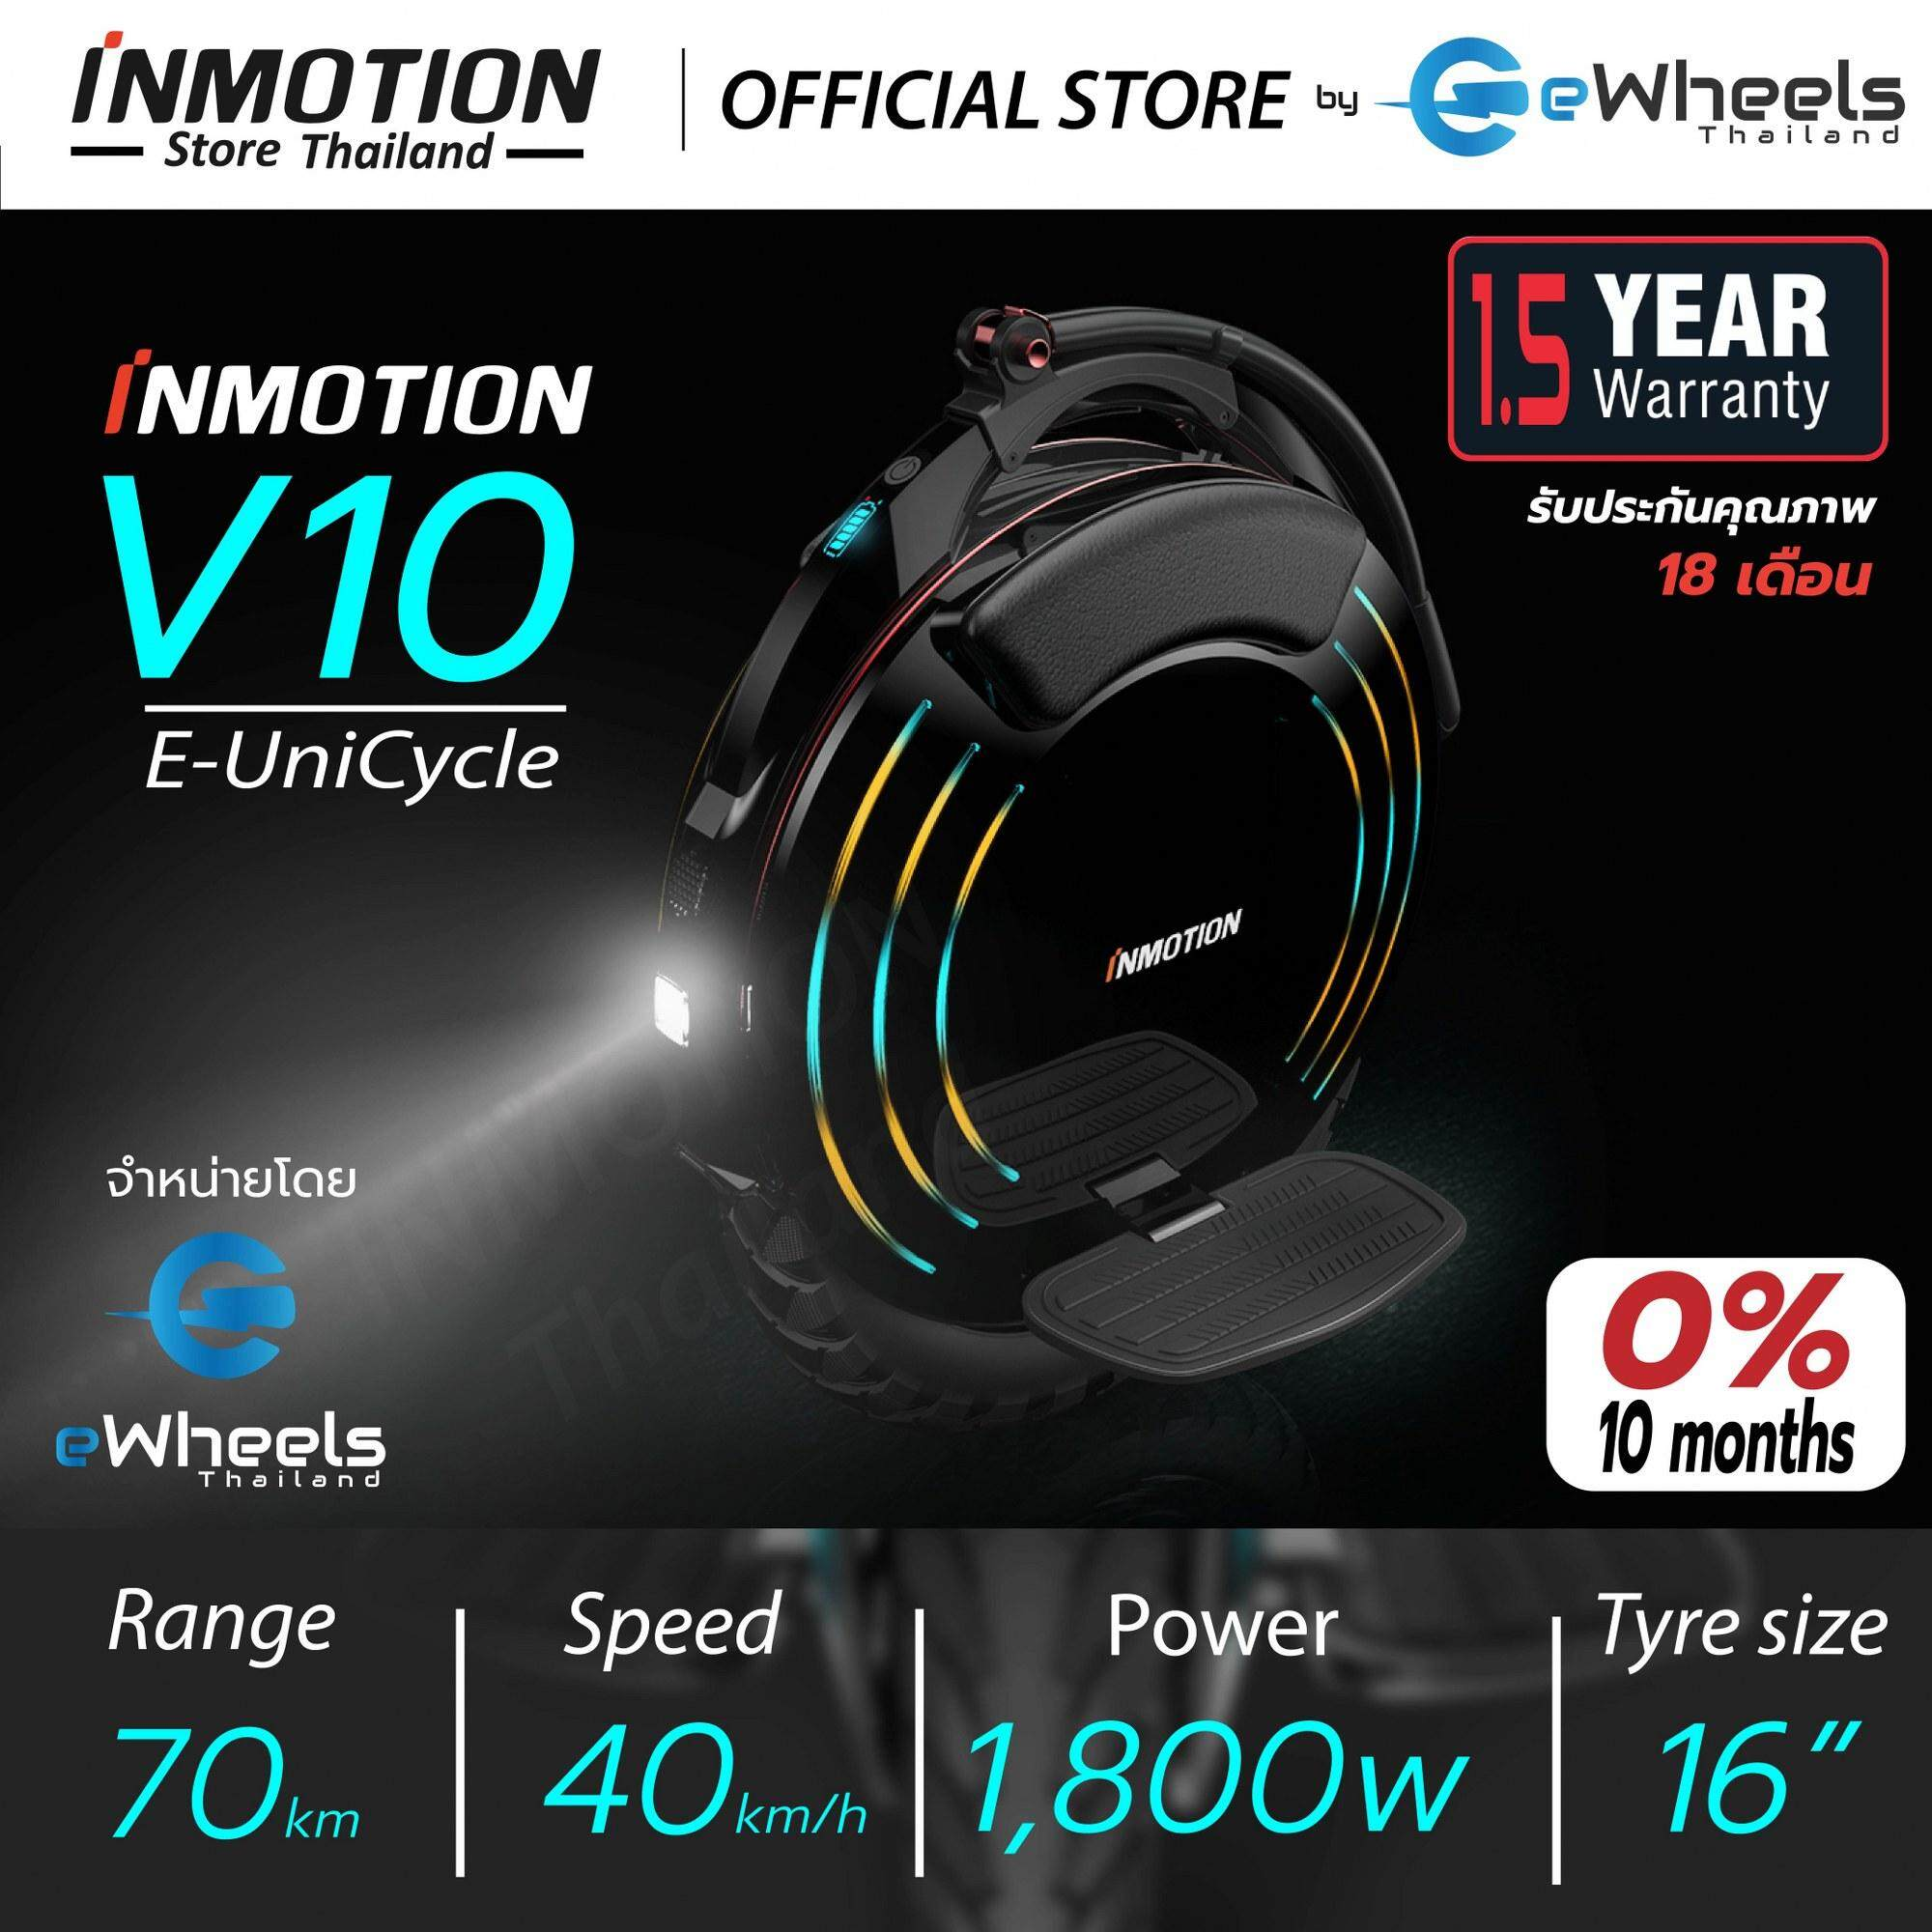 รถล้อเดียวไฟฟ้า Inmotion V10 (v10 Electric Unicycle) By Inmotion Thailand (by Ewheels Thailand).